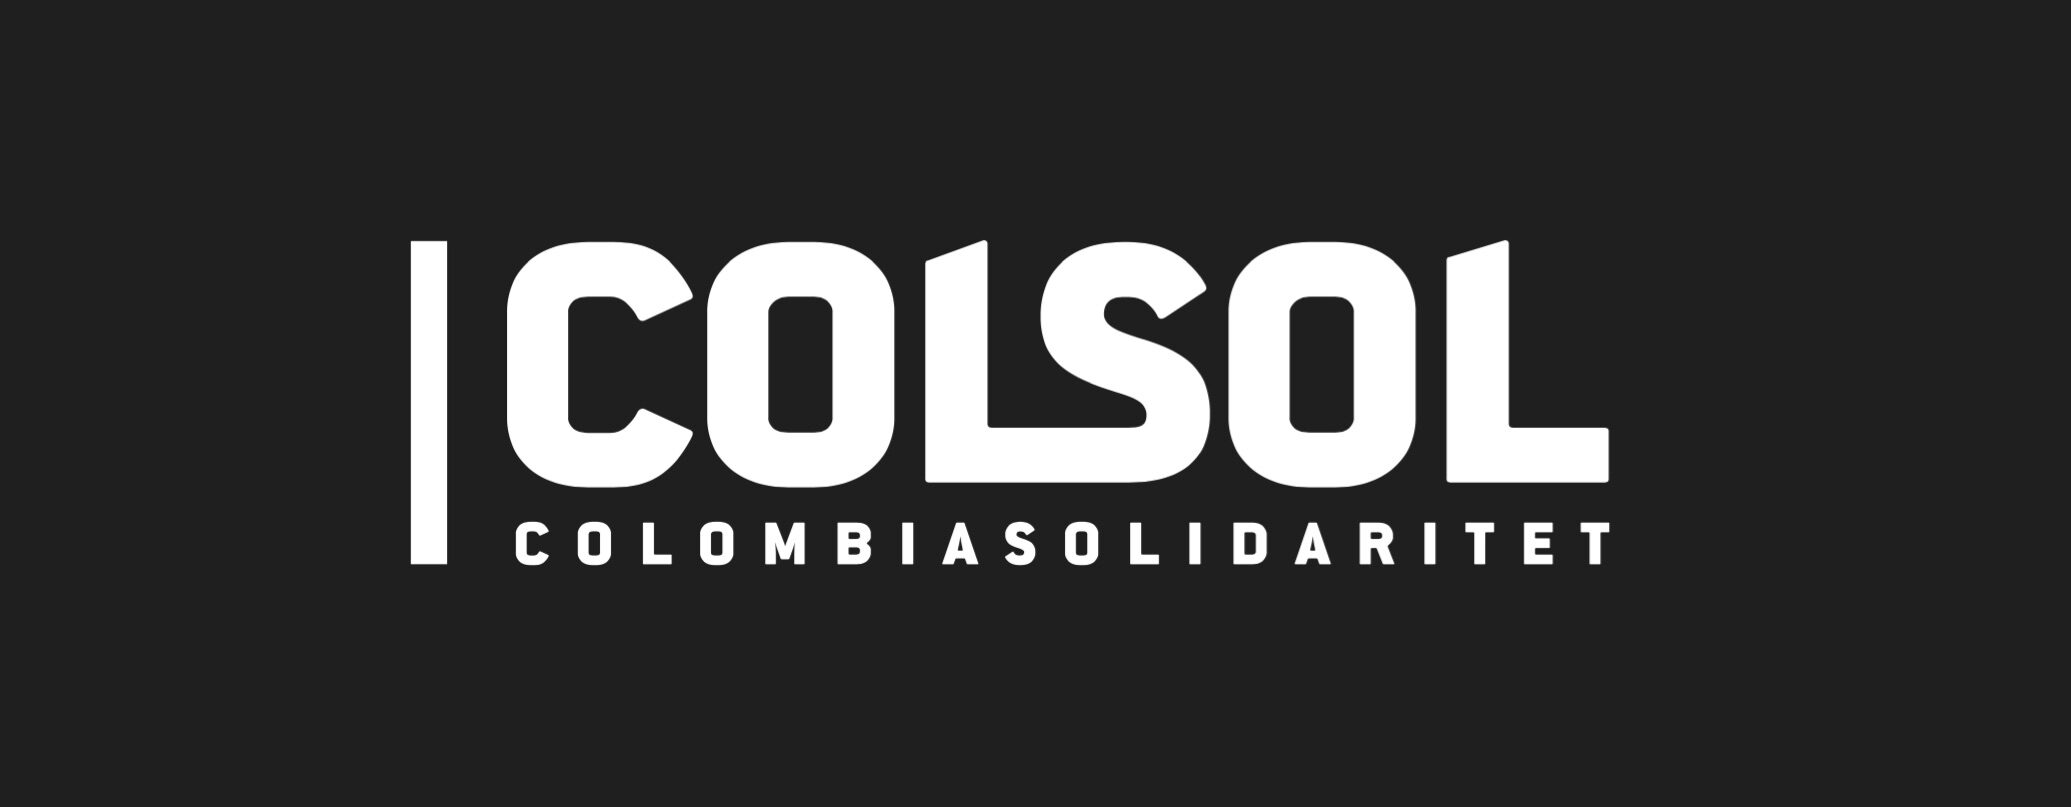 Colombia Solidaritet